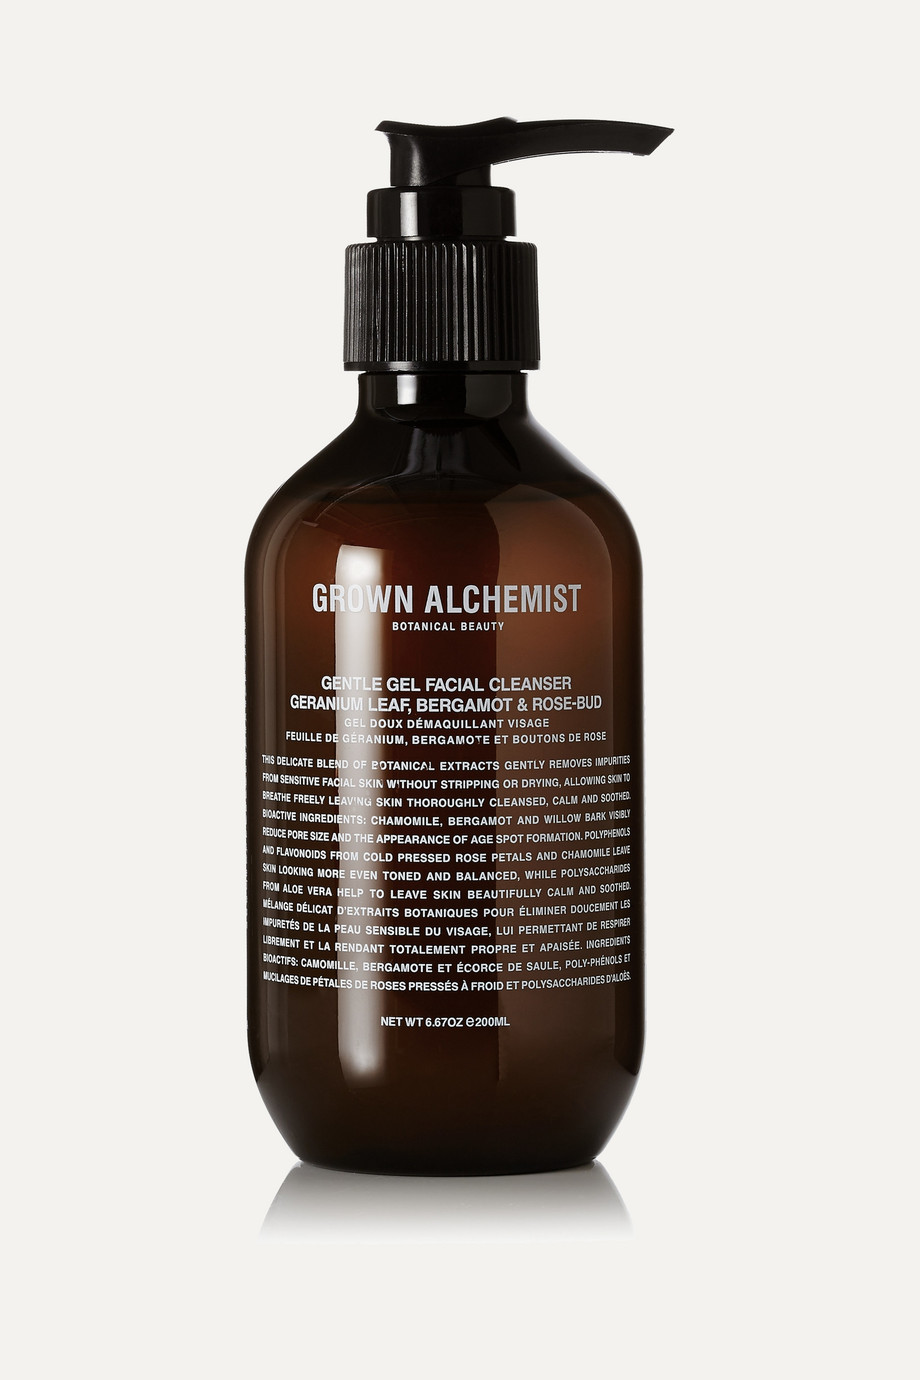 GROWN ALCHEMIST Gentle Gel Facial Cleanser, 200ml